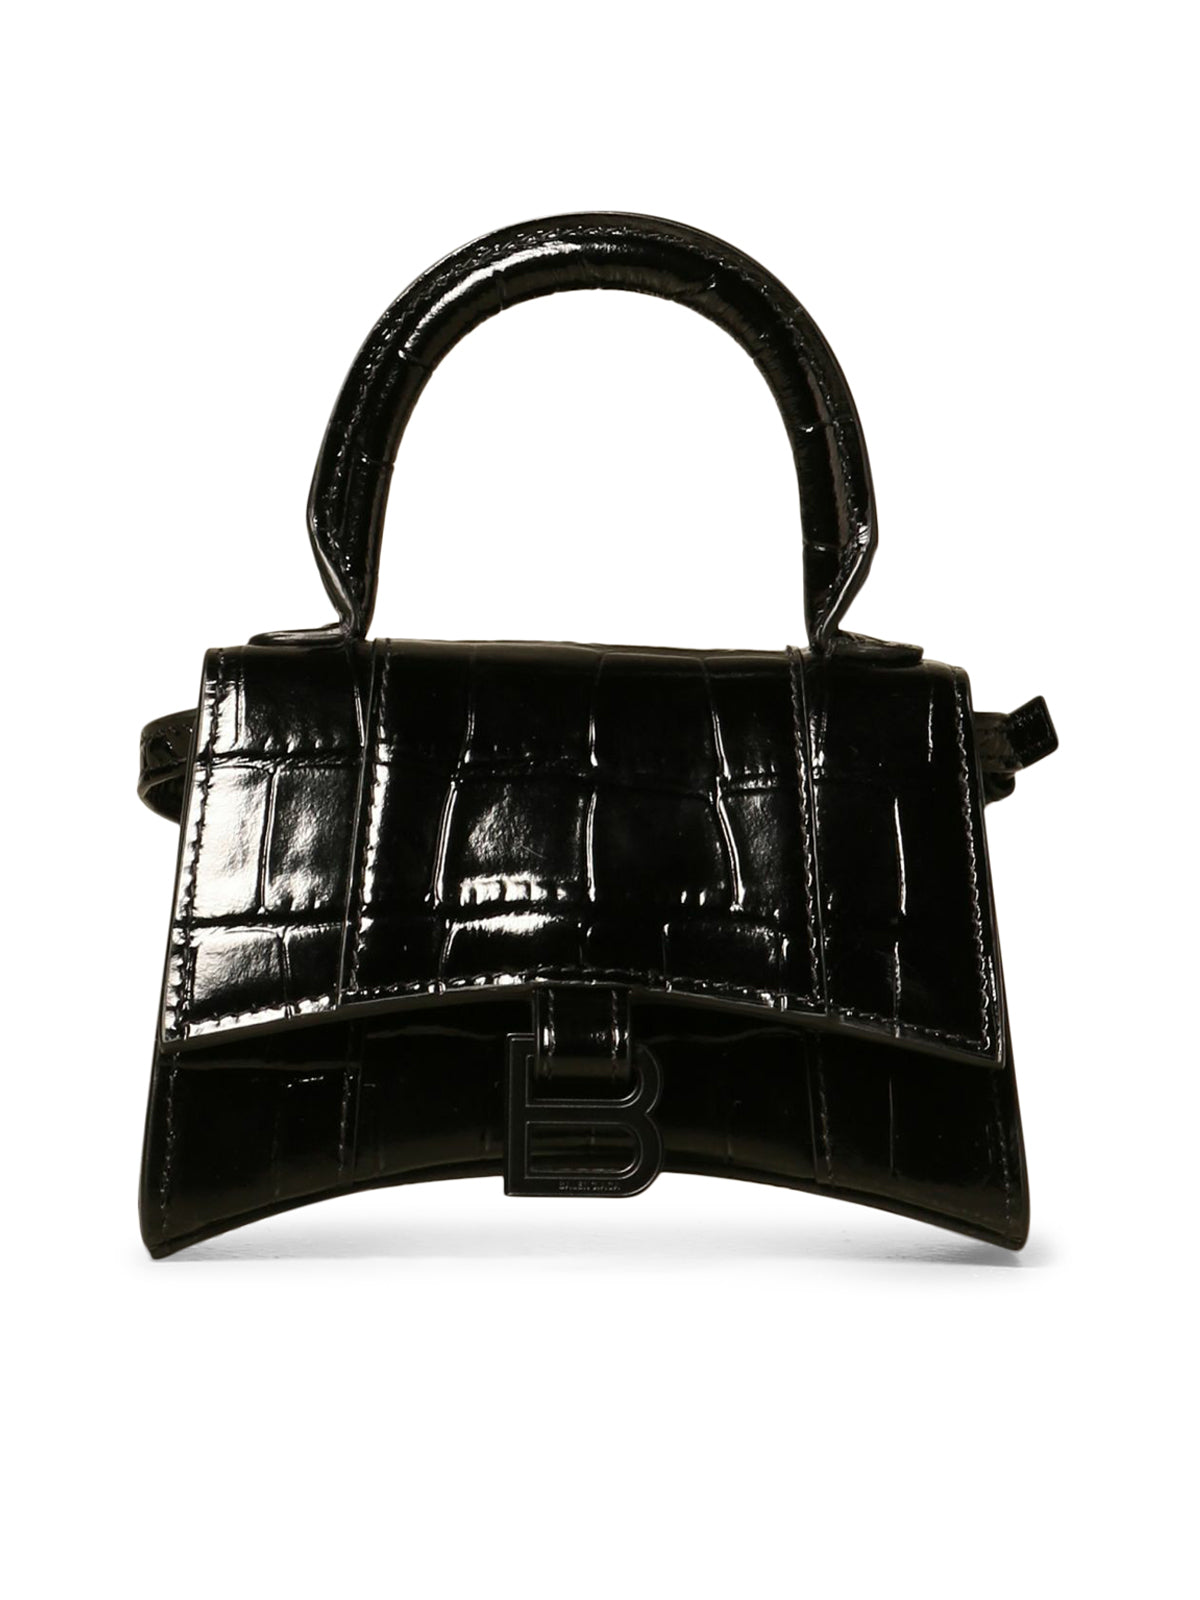 Hourglass micro bag in crocodile print leather